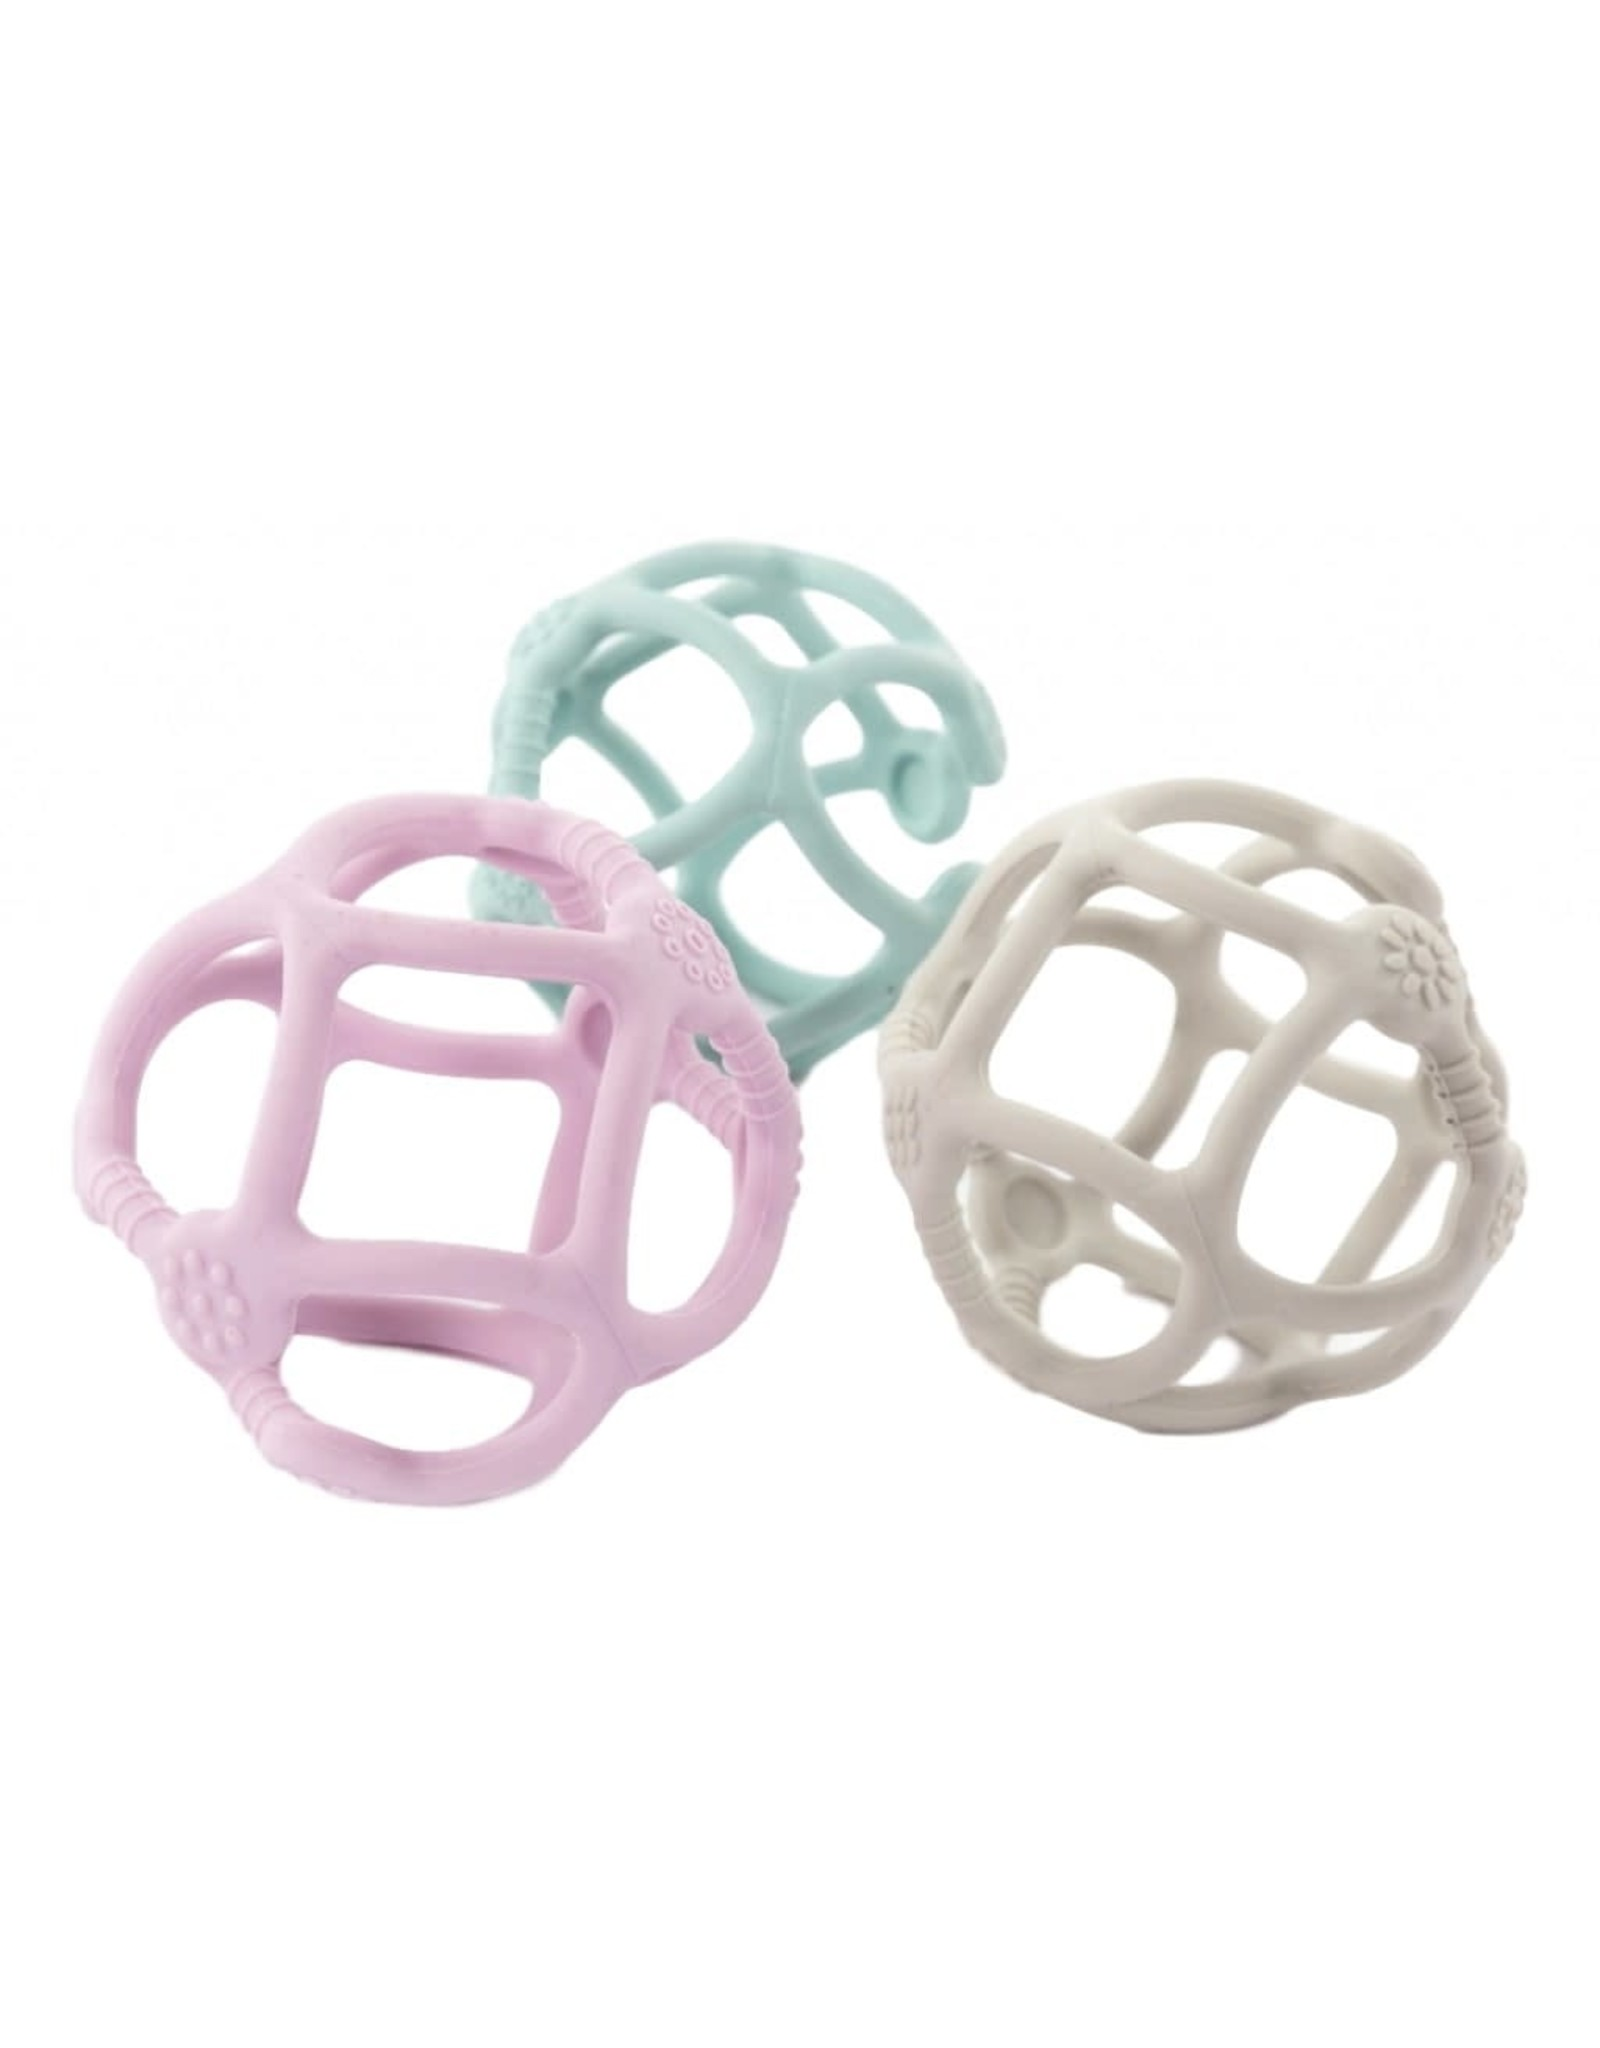 Bo Jungle Bo Jungle B-Ball Silicone Pastel Pink